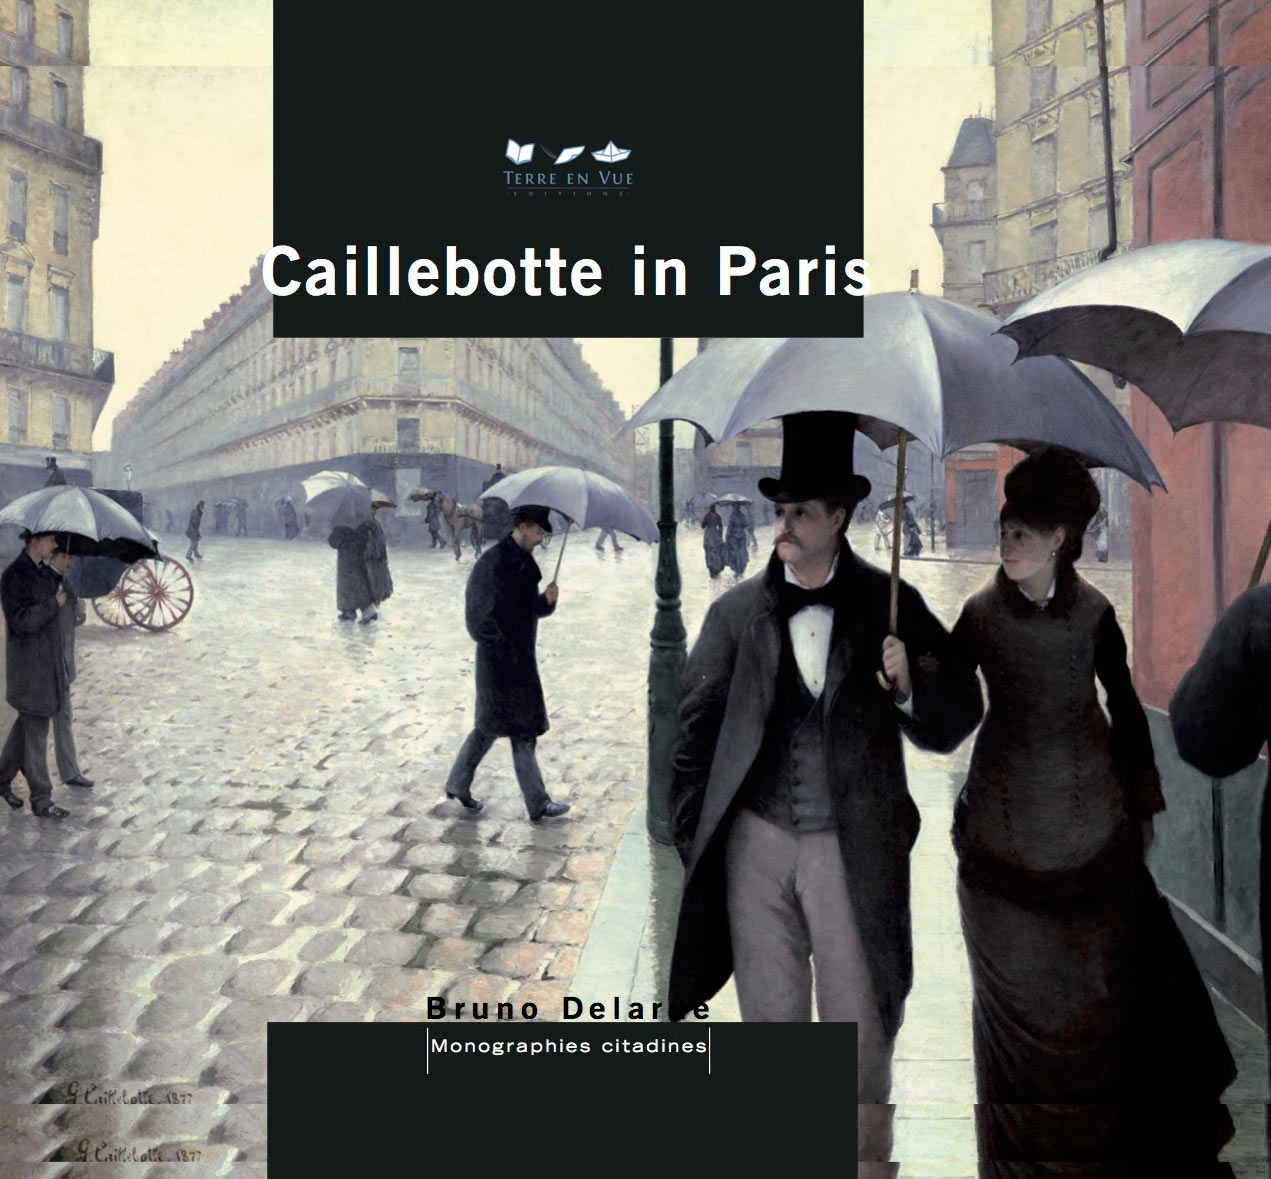 Caillebotte in Paris